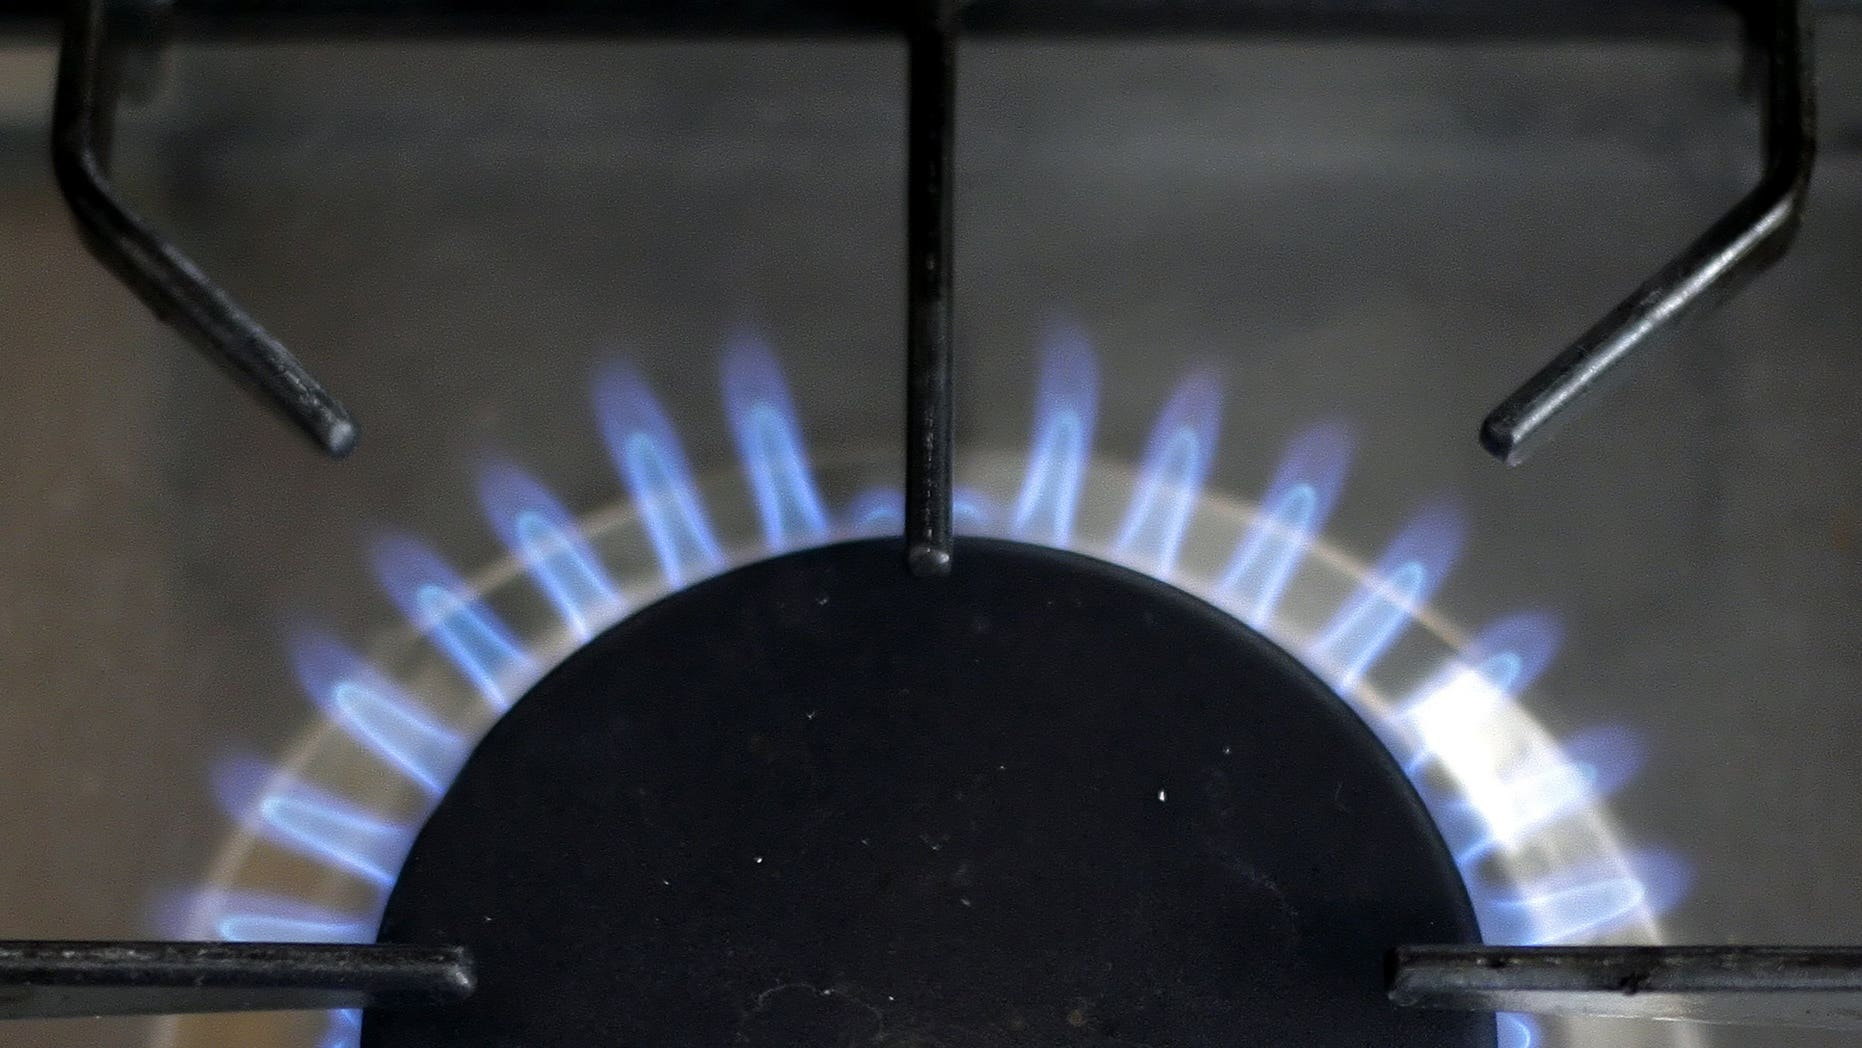 British energy firm Centrica has said that it will shelve two key gas storage projects in Britain at a cost of ??240 million ($385 million).